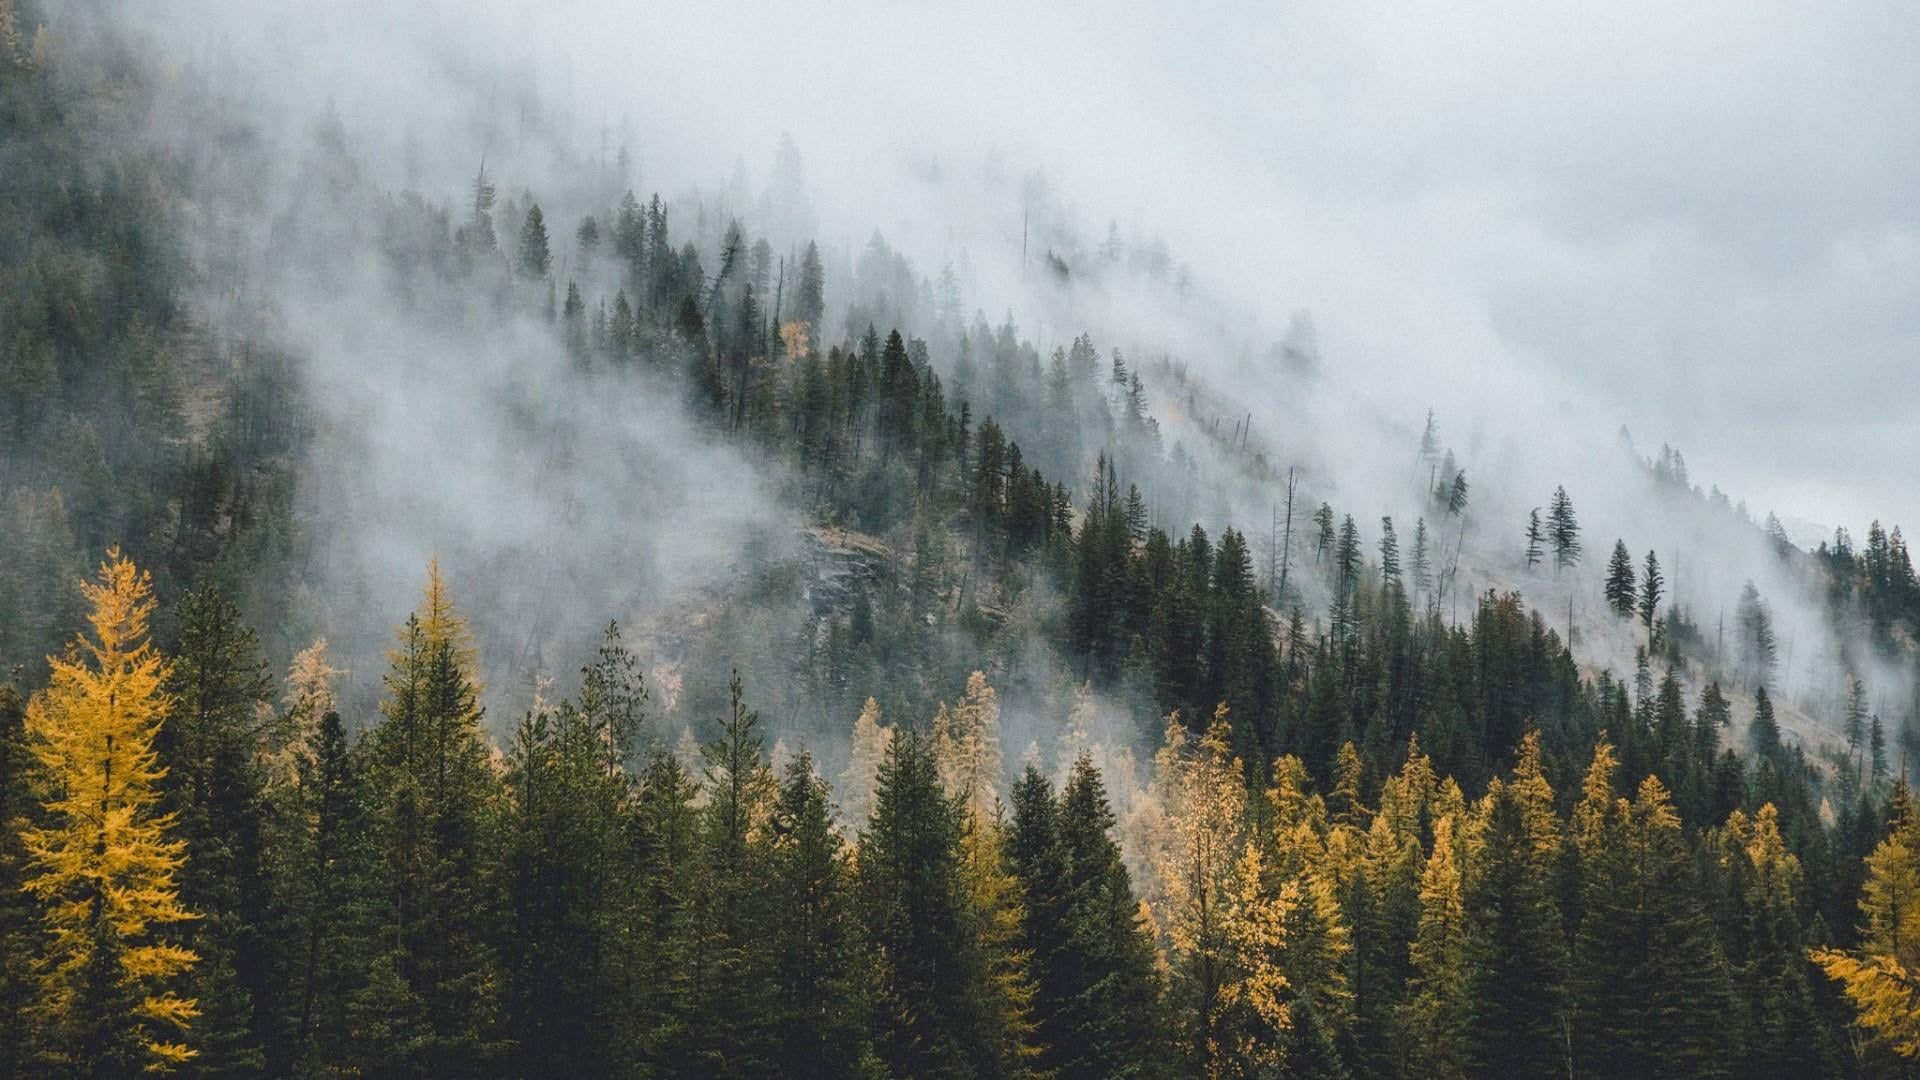 Wilderness Wallpaper Nature Tree Fog Woody Plant Mountain Mist In 2021 Forest Wallpaper Nature Pine Tree Silhouette Hd wallpaper tent camping forest fog